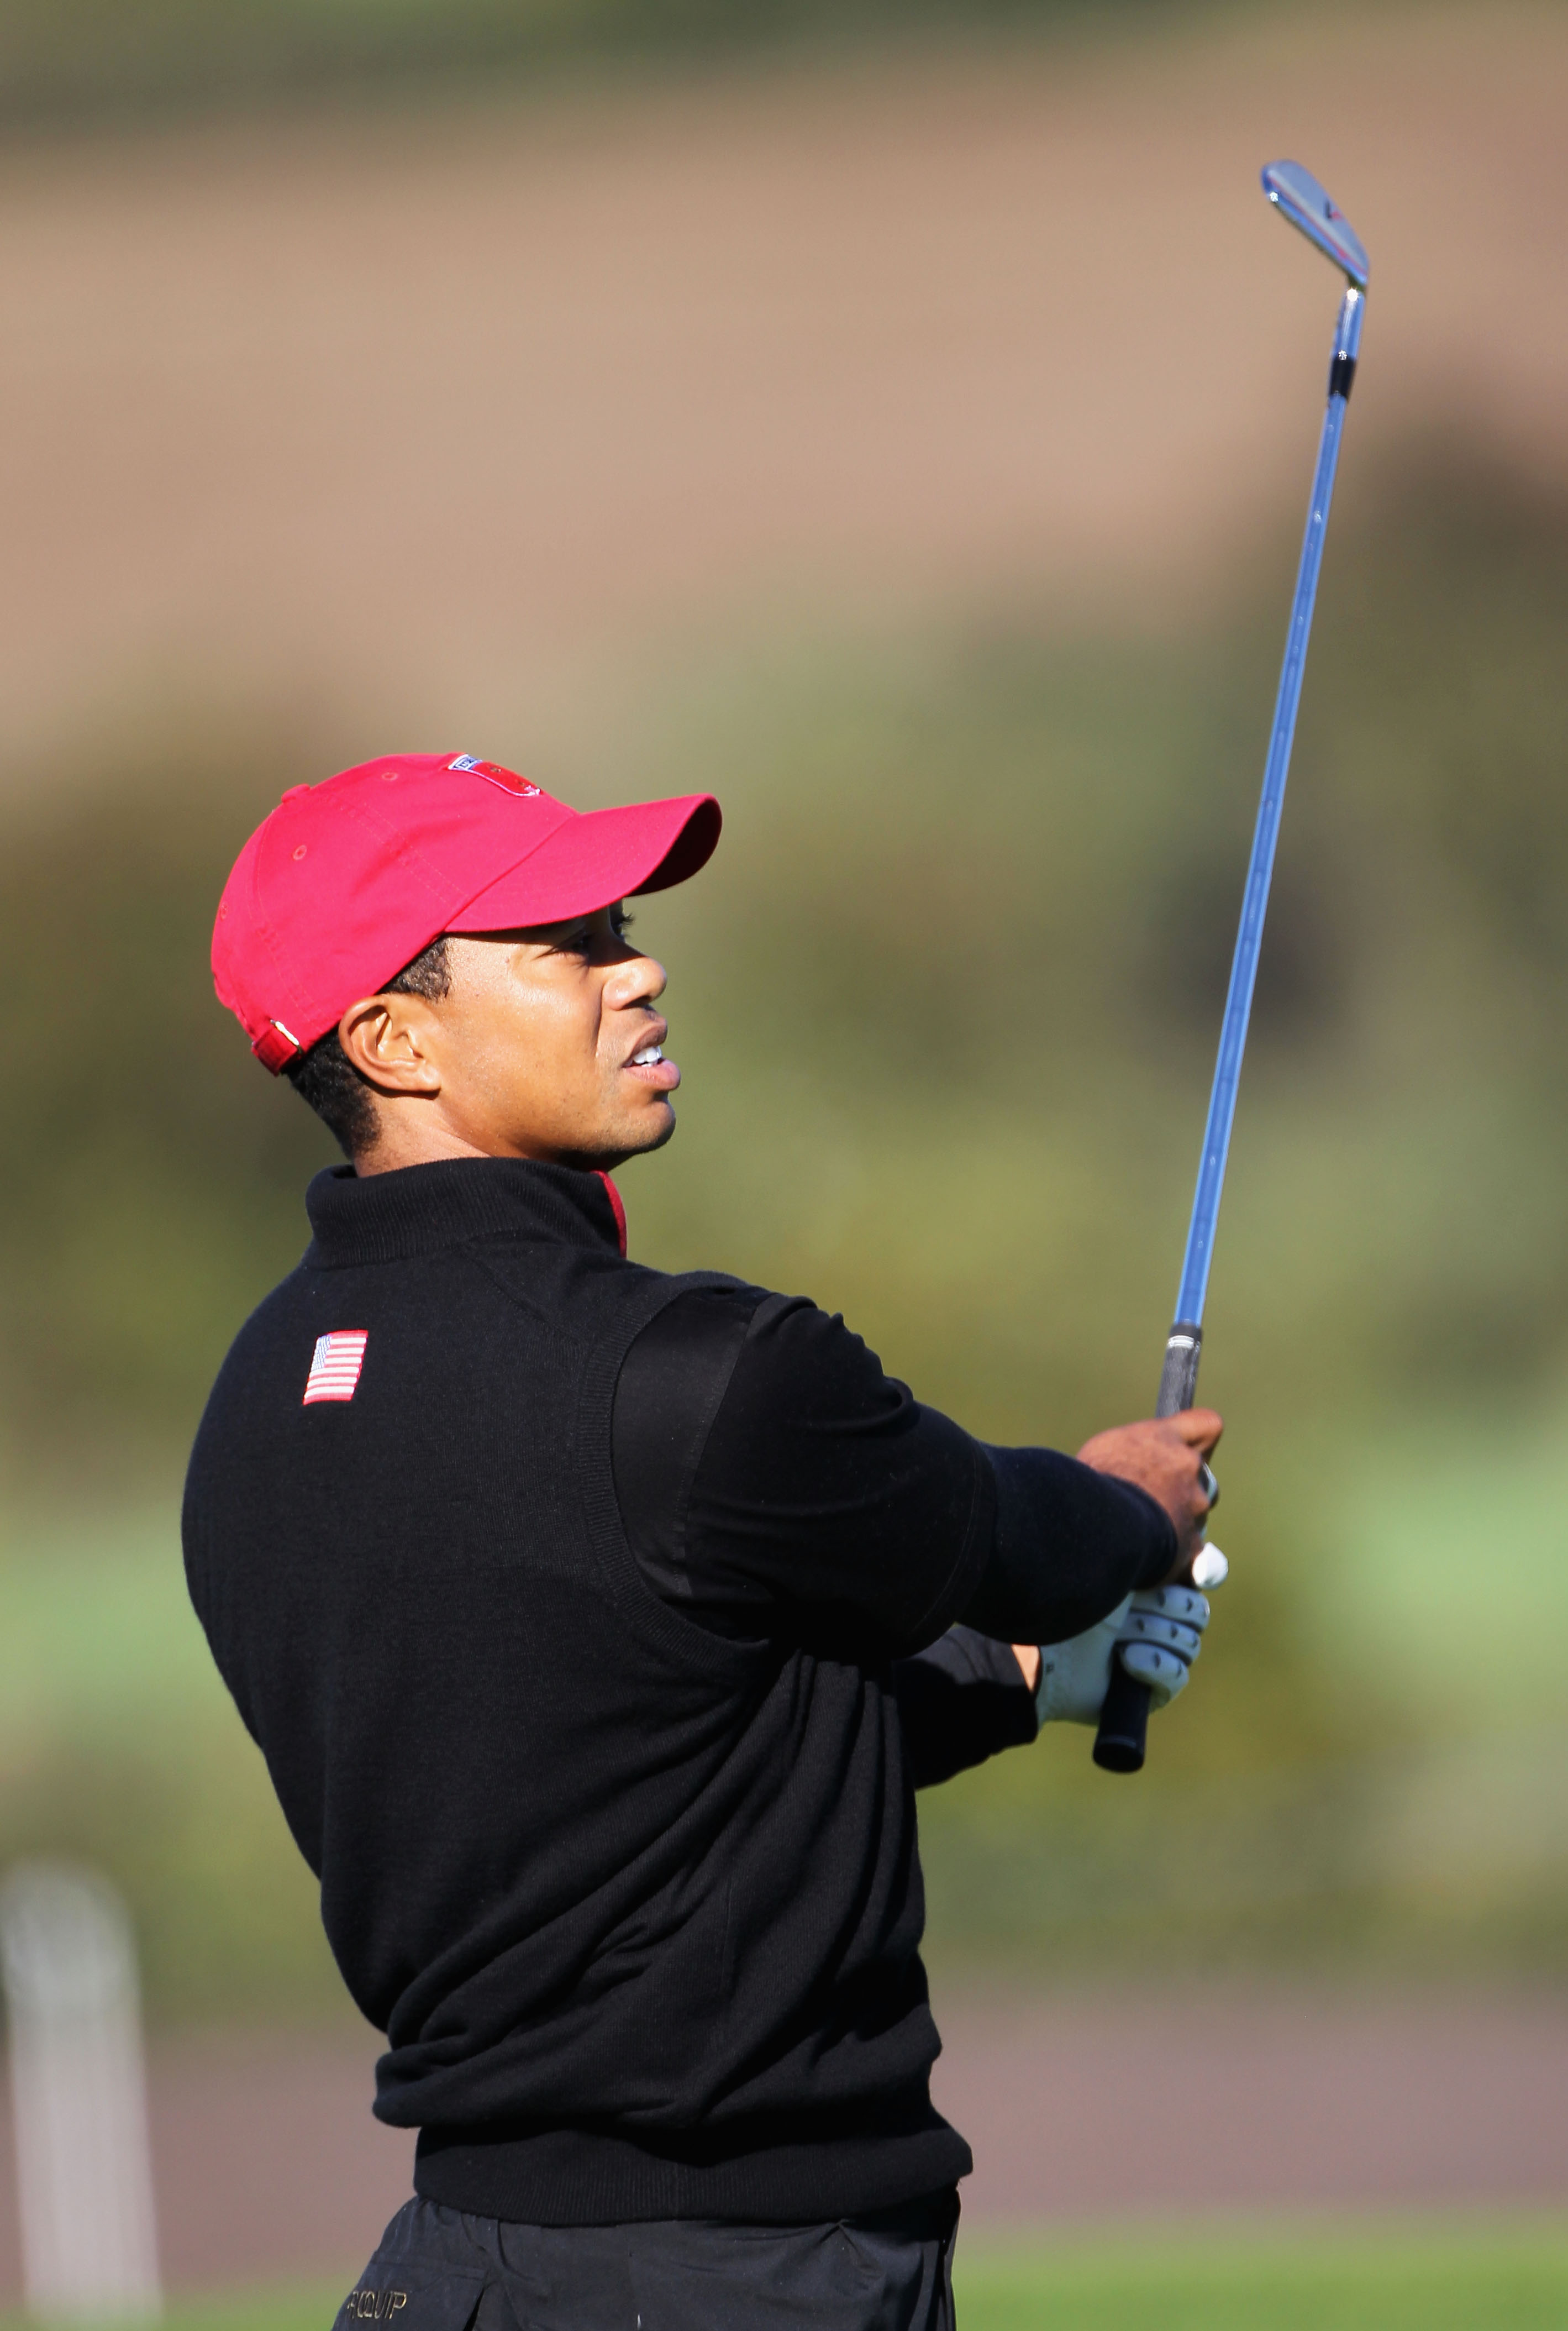 NEWPORT, WALES - OCTOBER 04:  Tiger Woods of the USA hits a shot on the first hole in the singles matches during the 2010 Ryder Cup at the Celtic Manor Resort on October 4, 2010 in Newport, Wales.  (Photo by Jamie Squire/Getty Images)